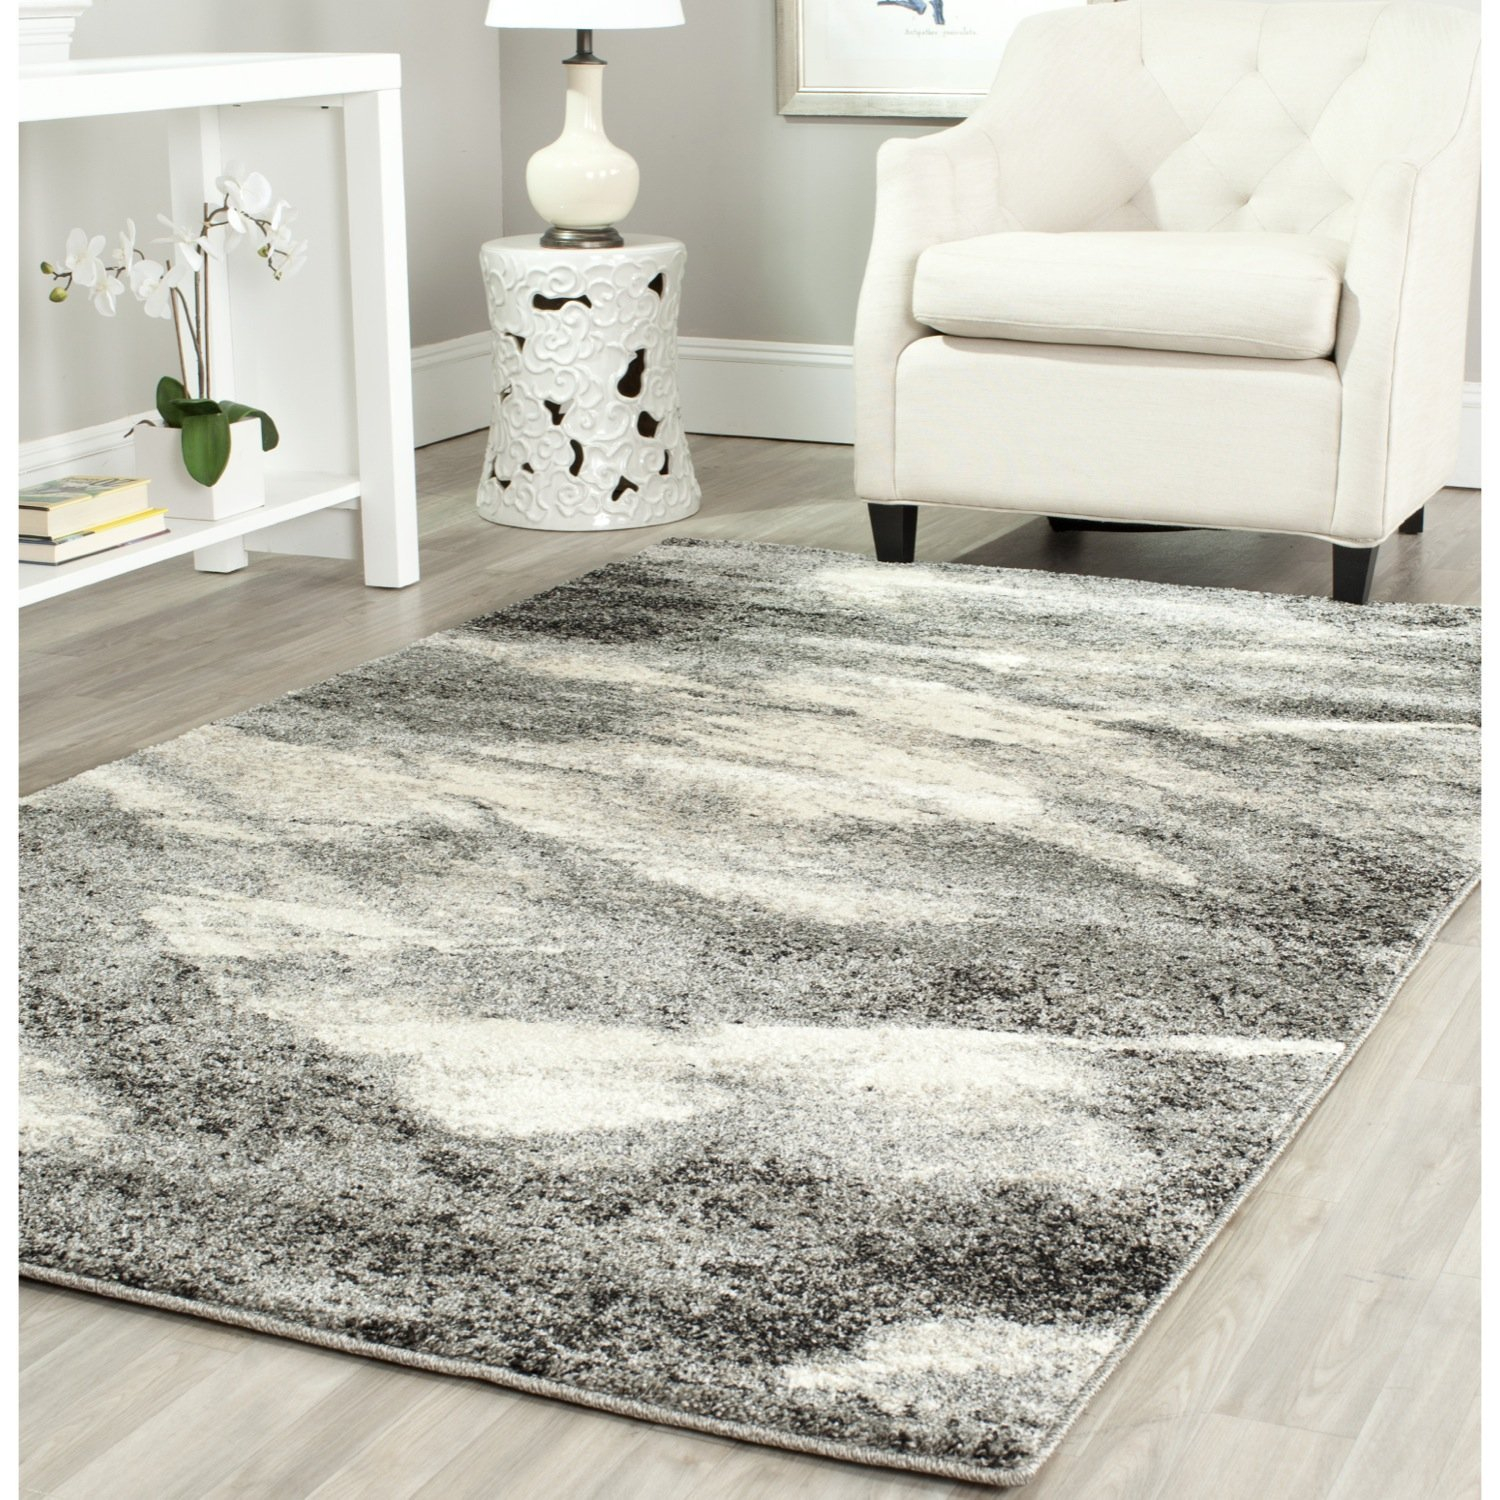 Epic Grey Living Room Rug Theme — Mosaic Found within Beautiful Grey Living Room Rug